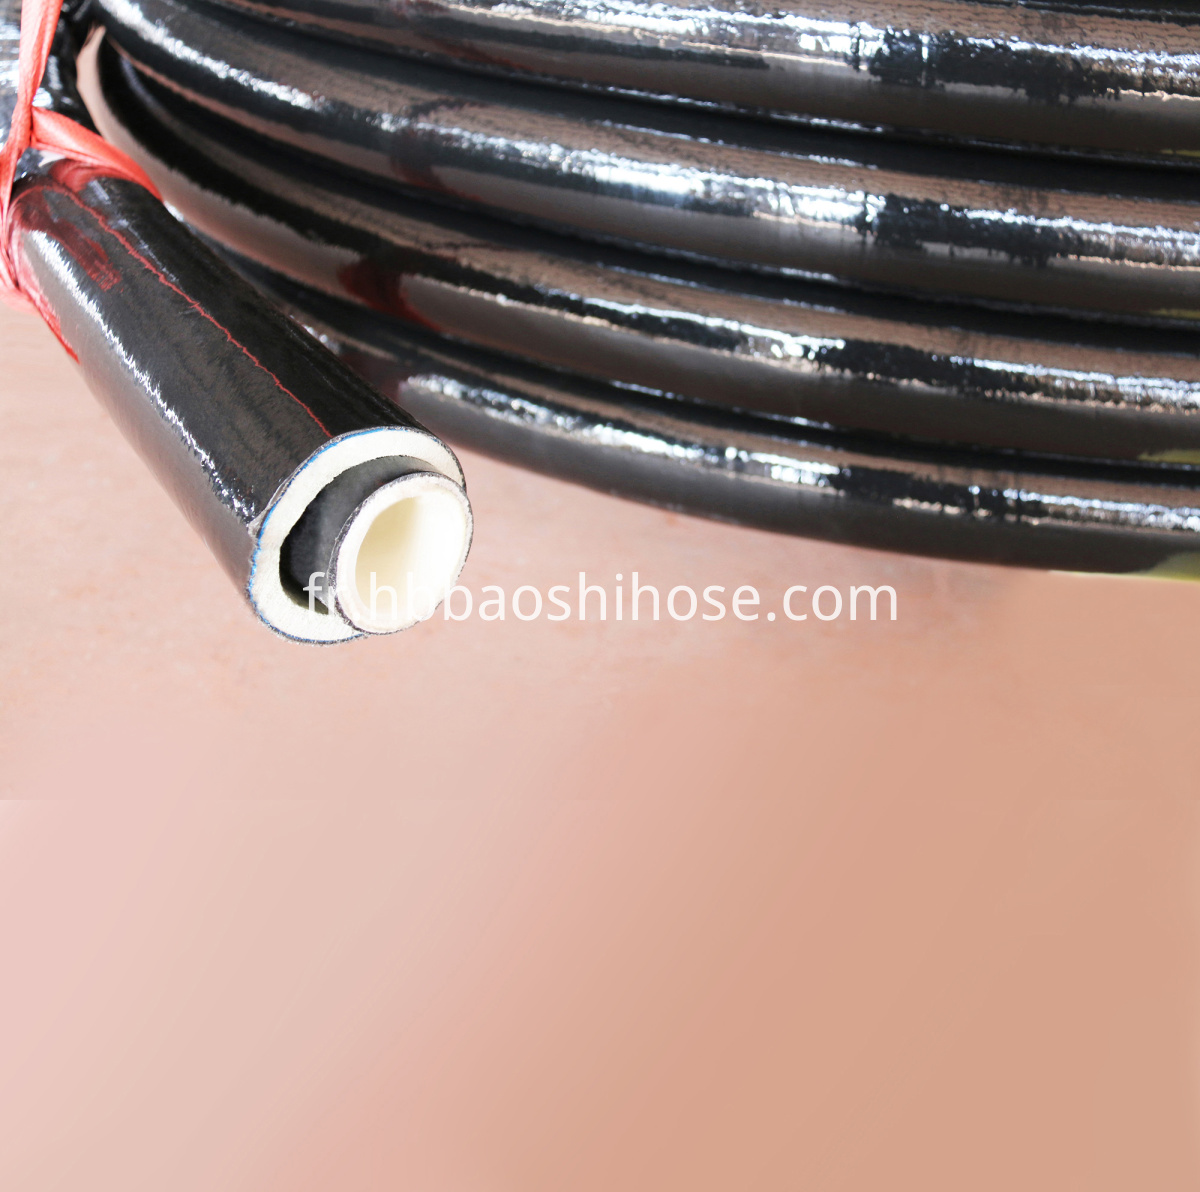 Flexible Composite Alcohol Injection Pipe